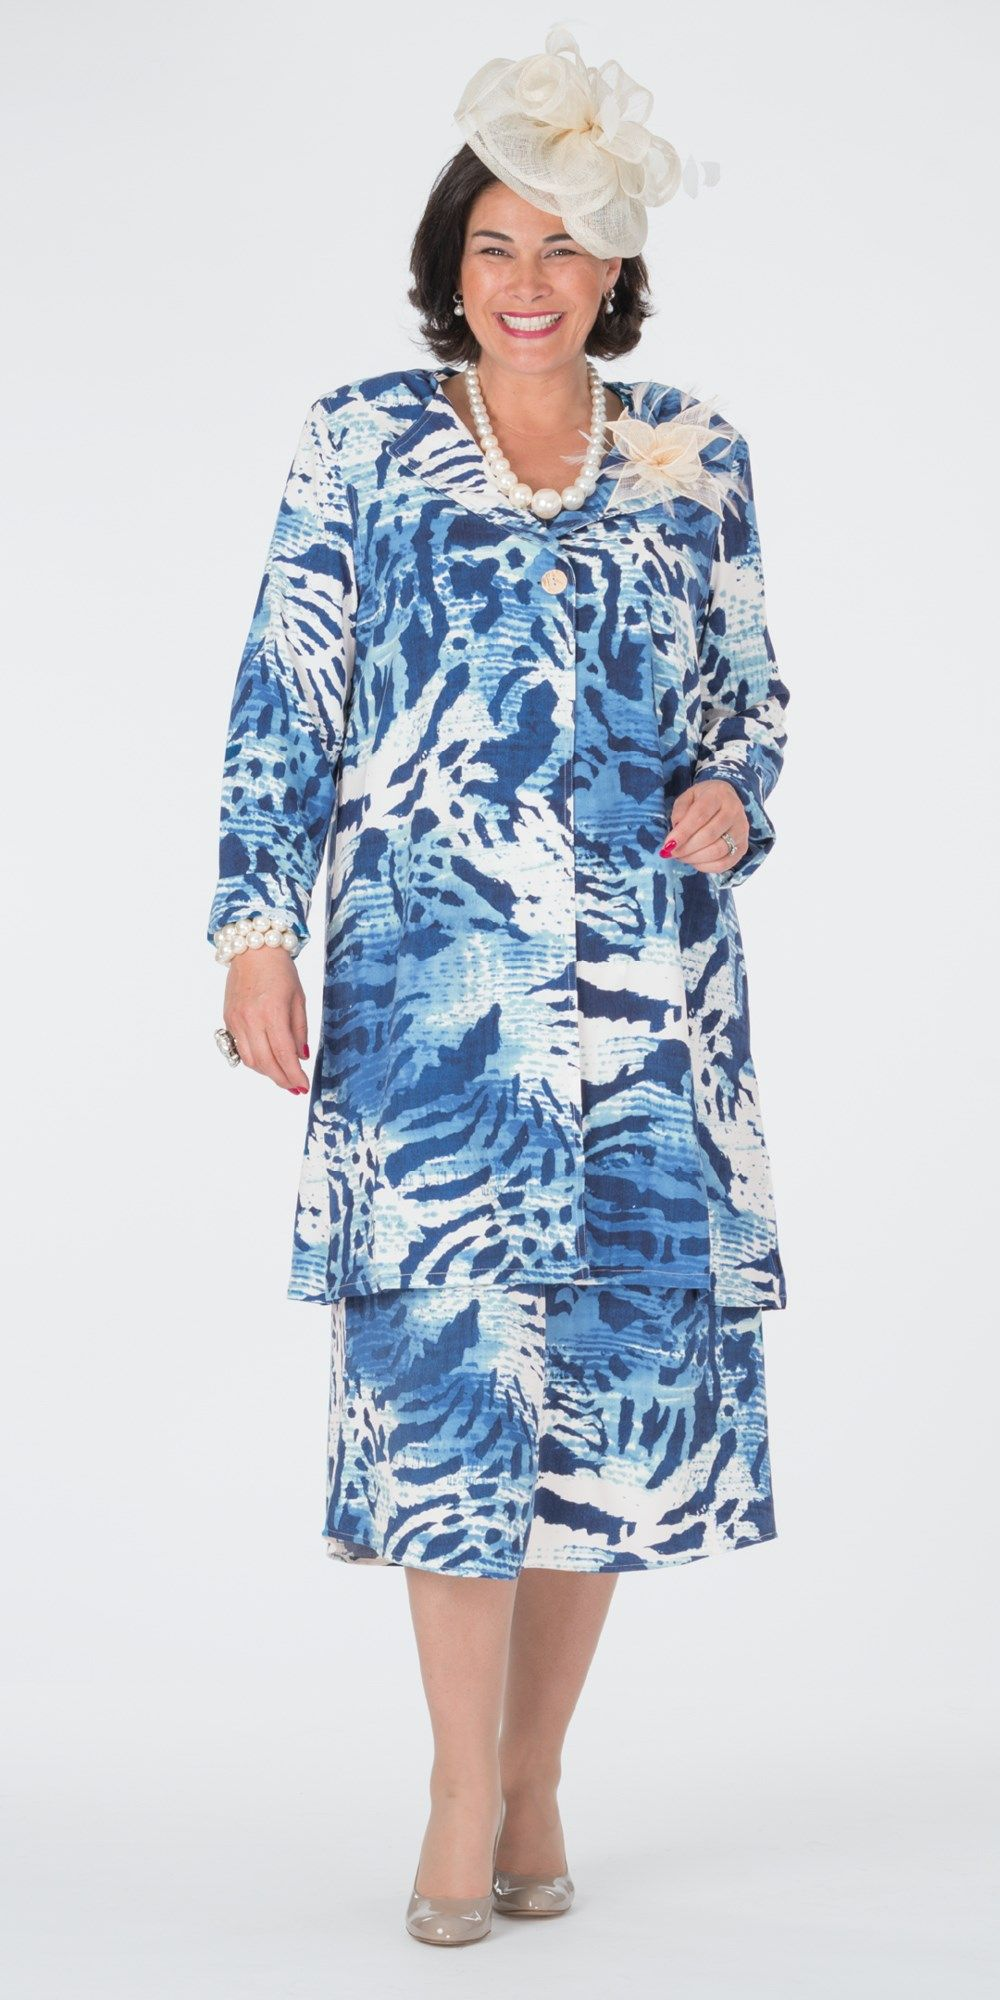 Box 2 navy/cream crepe print coat and dress | Outfits for Wedding ...